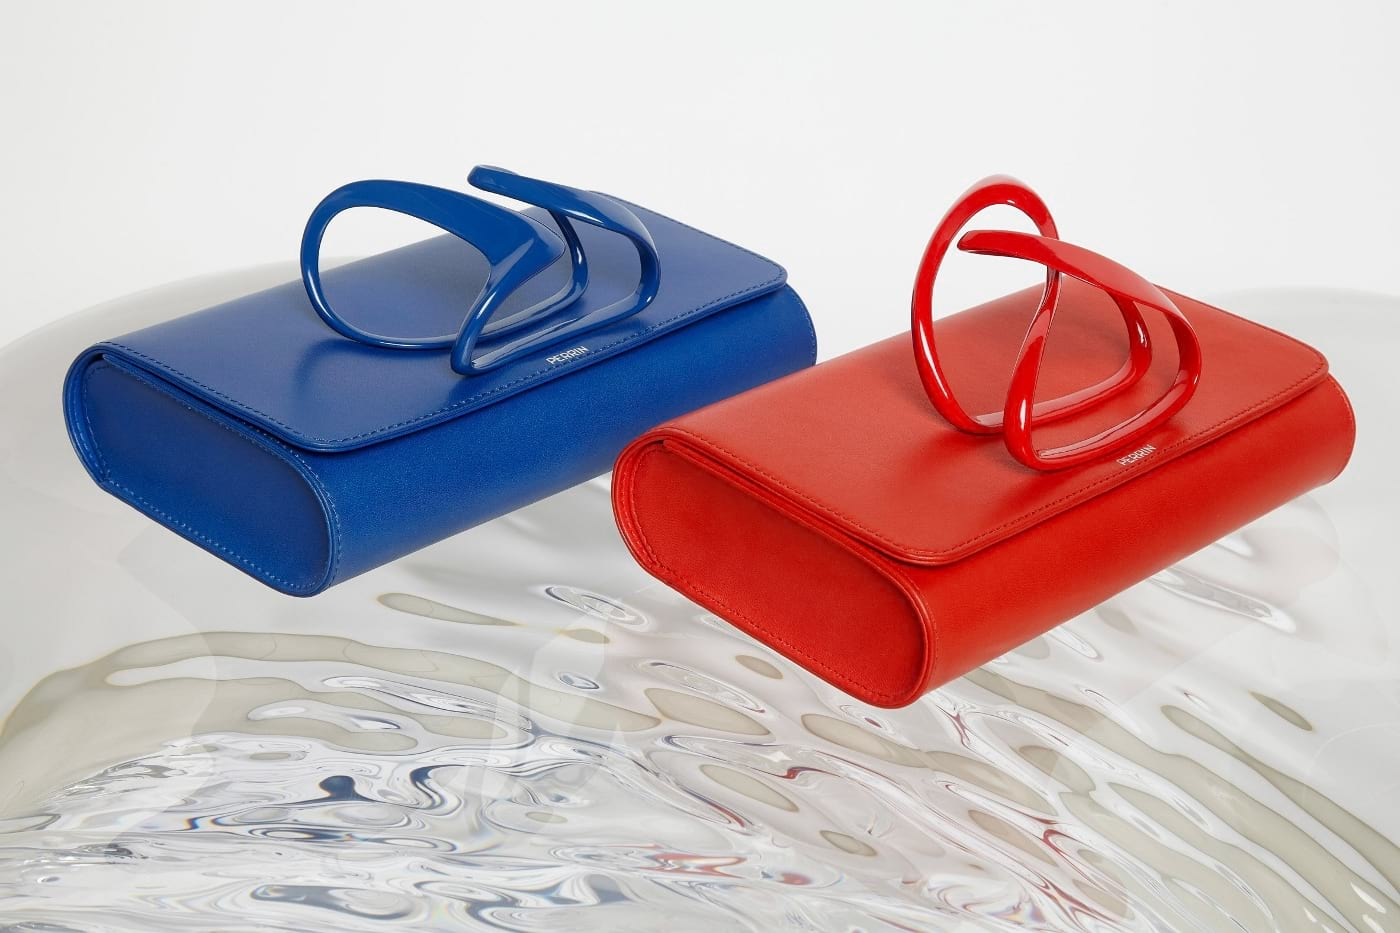 Perrin Paris x Zaha Hadid Clutch Bag Collection.